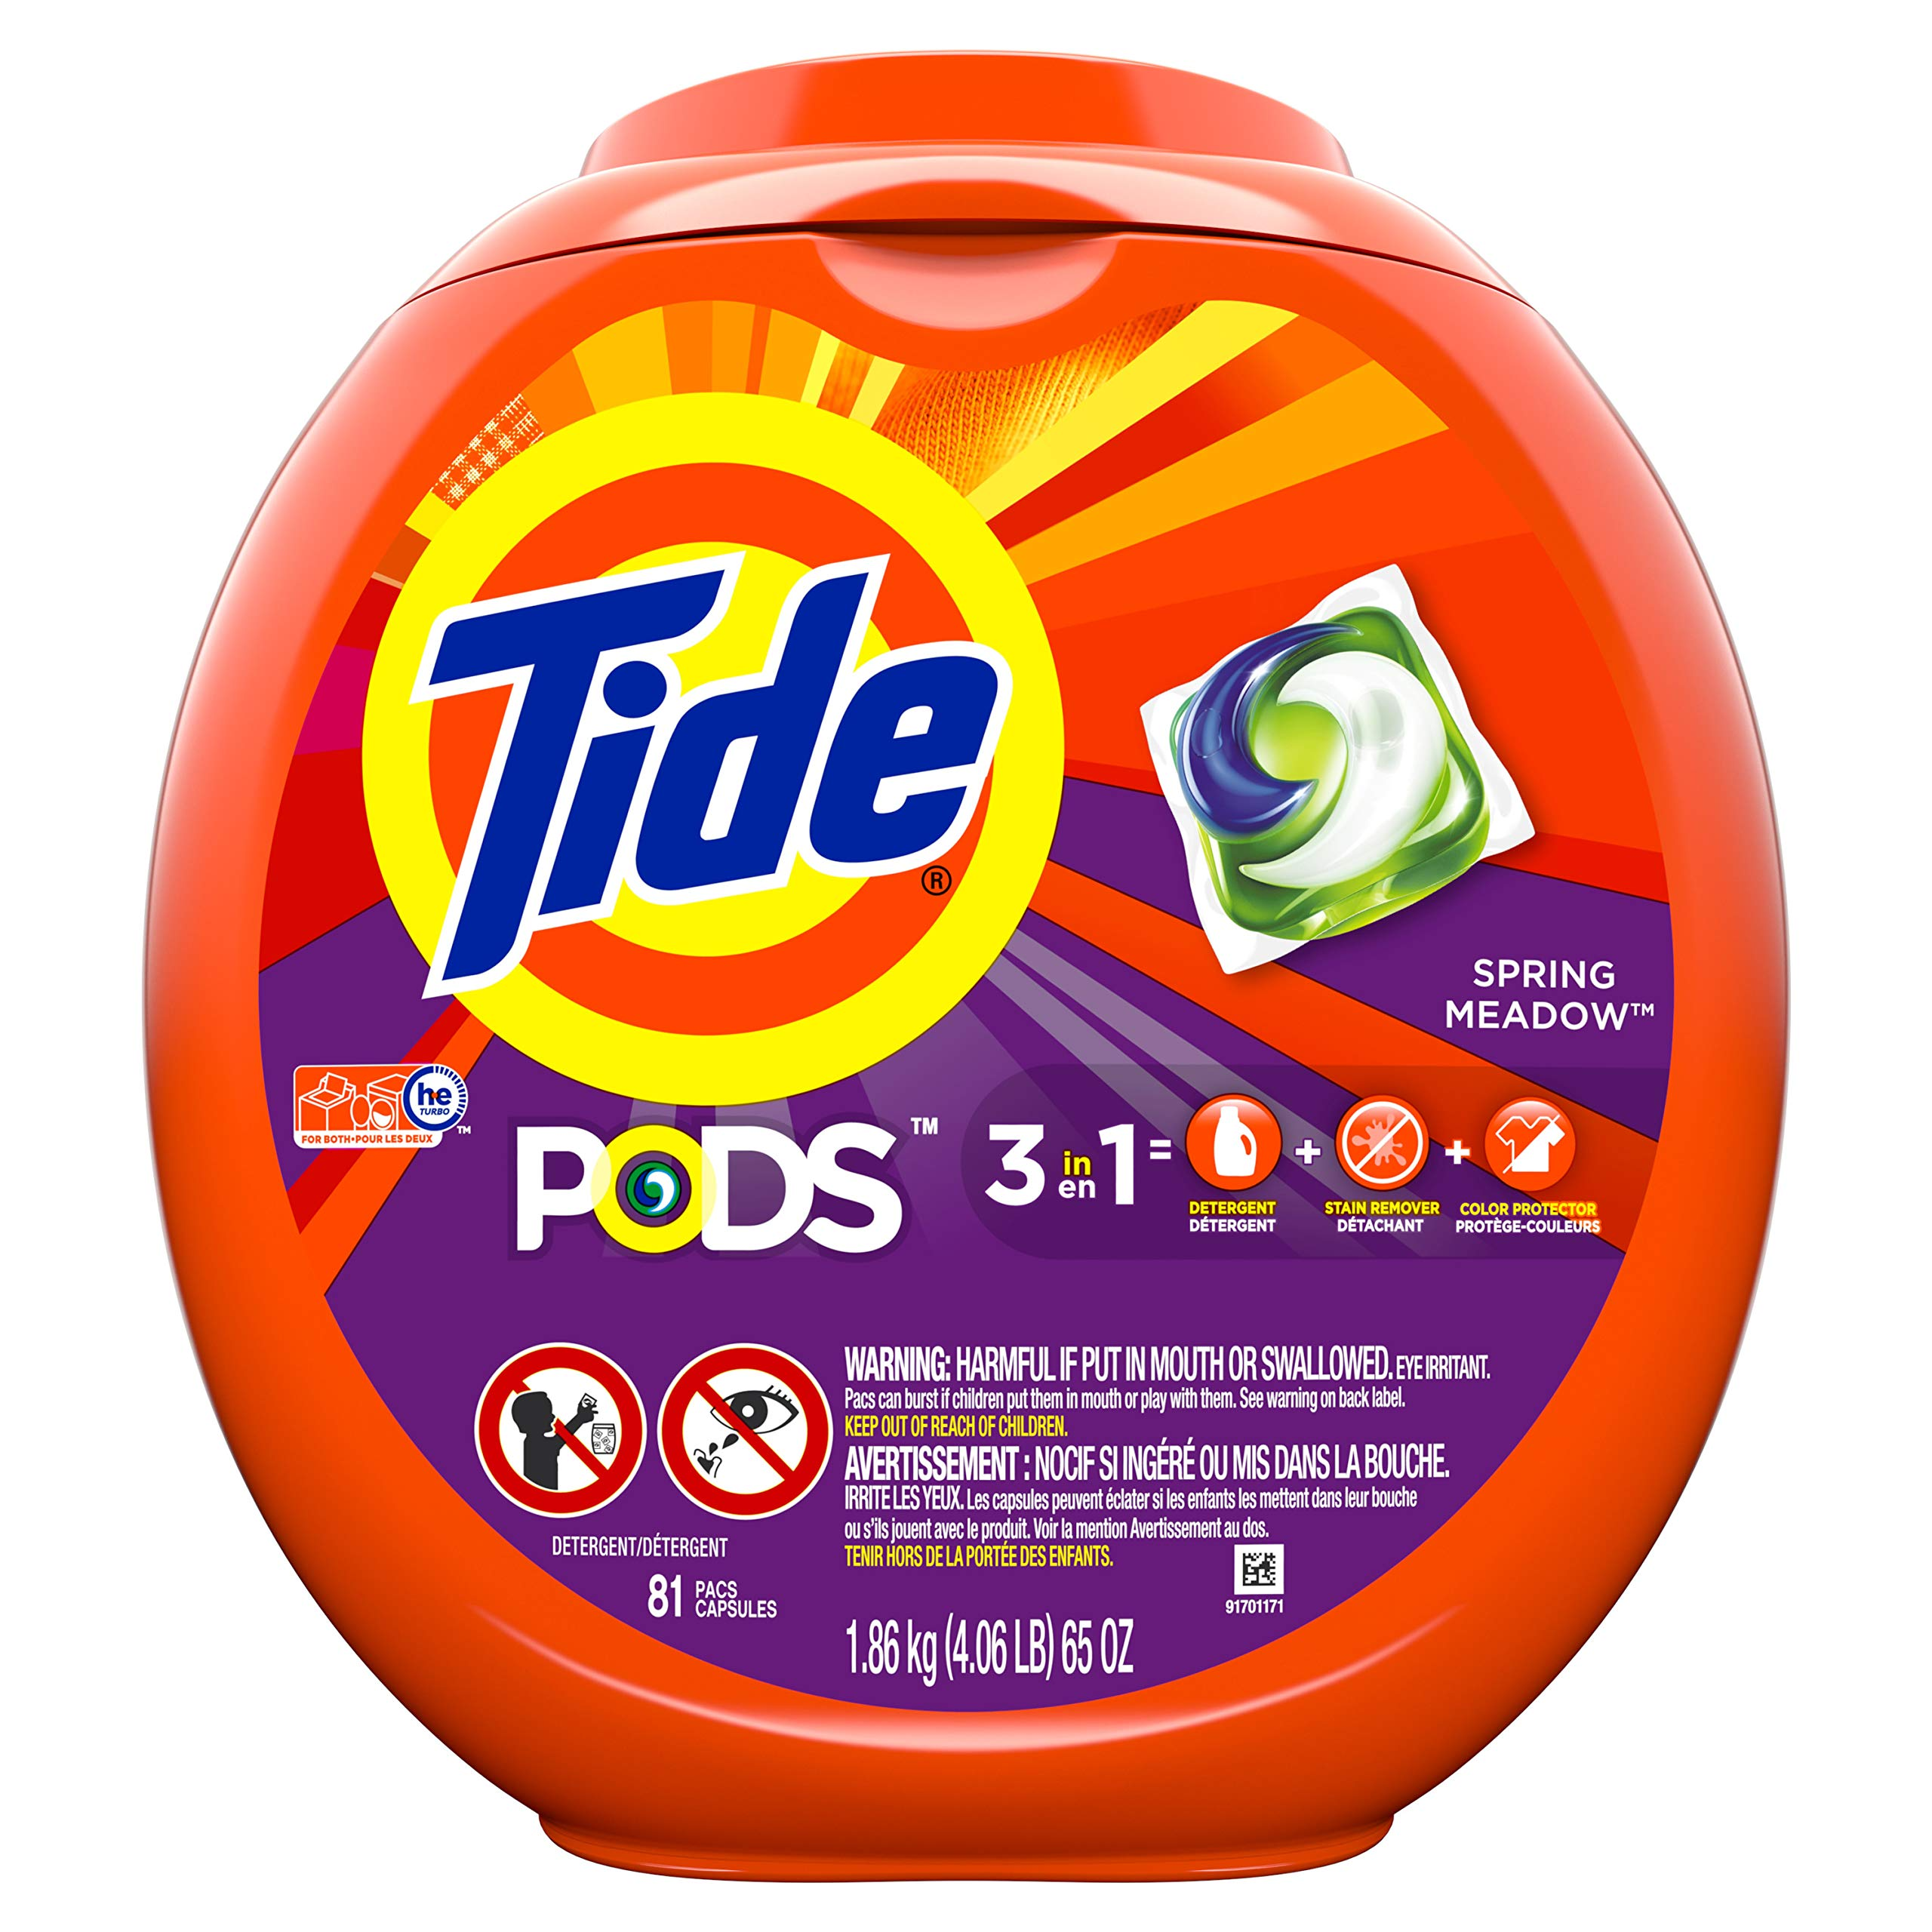 Tide PODS 3 in 1 HE Turbo Laundry Detergent Pacs, Spring Meadow Scent, 81